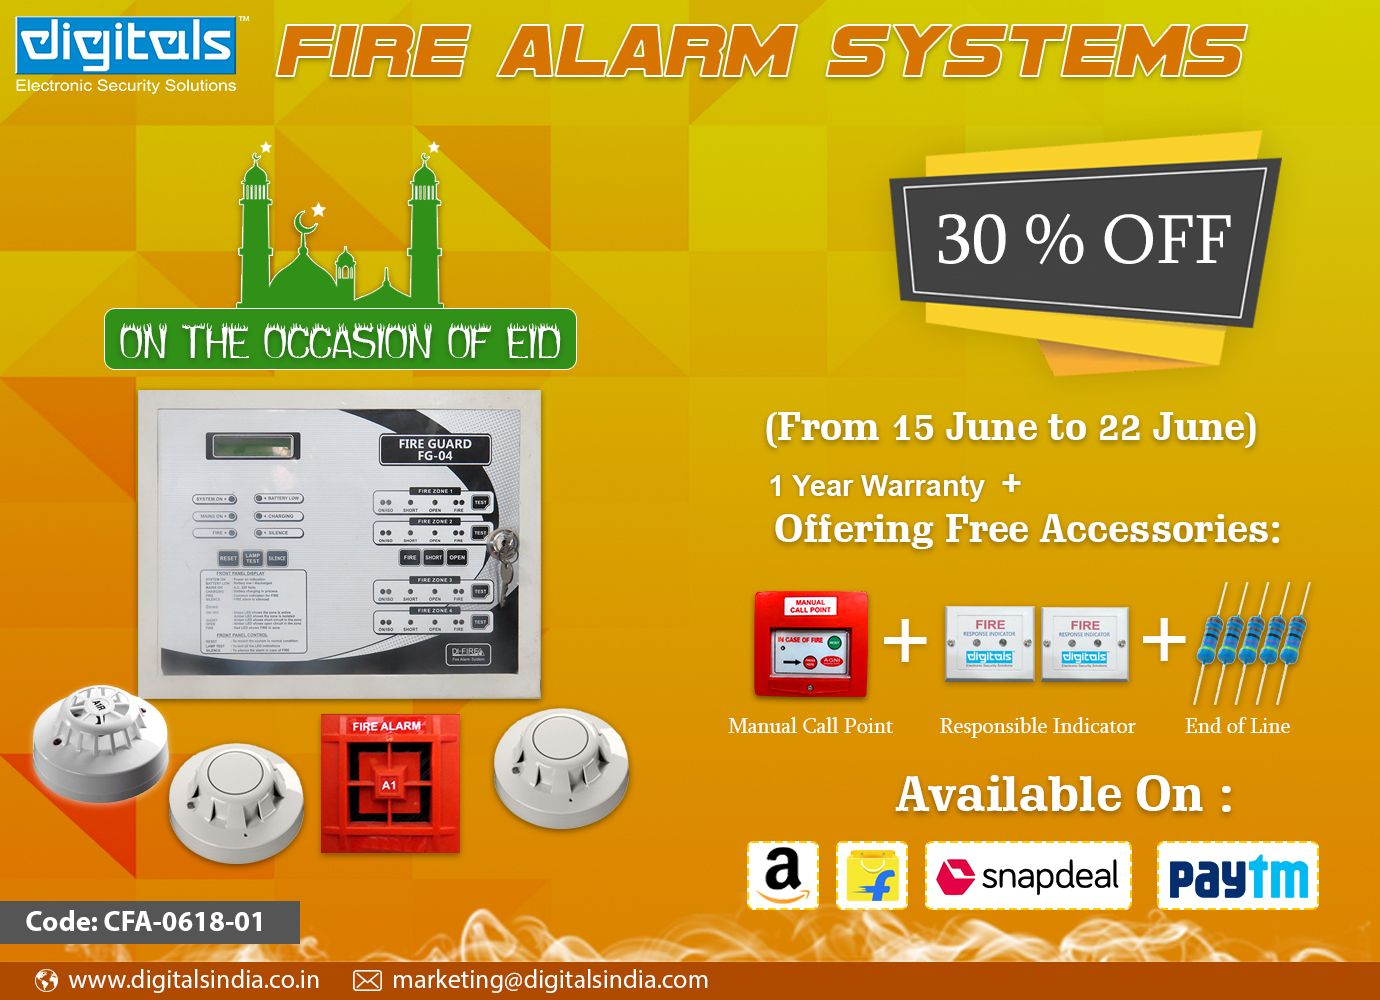 Advance Fire Alarm System with installation at 999/ only